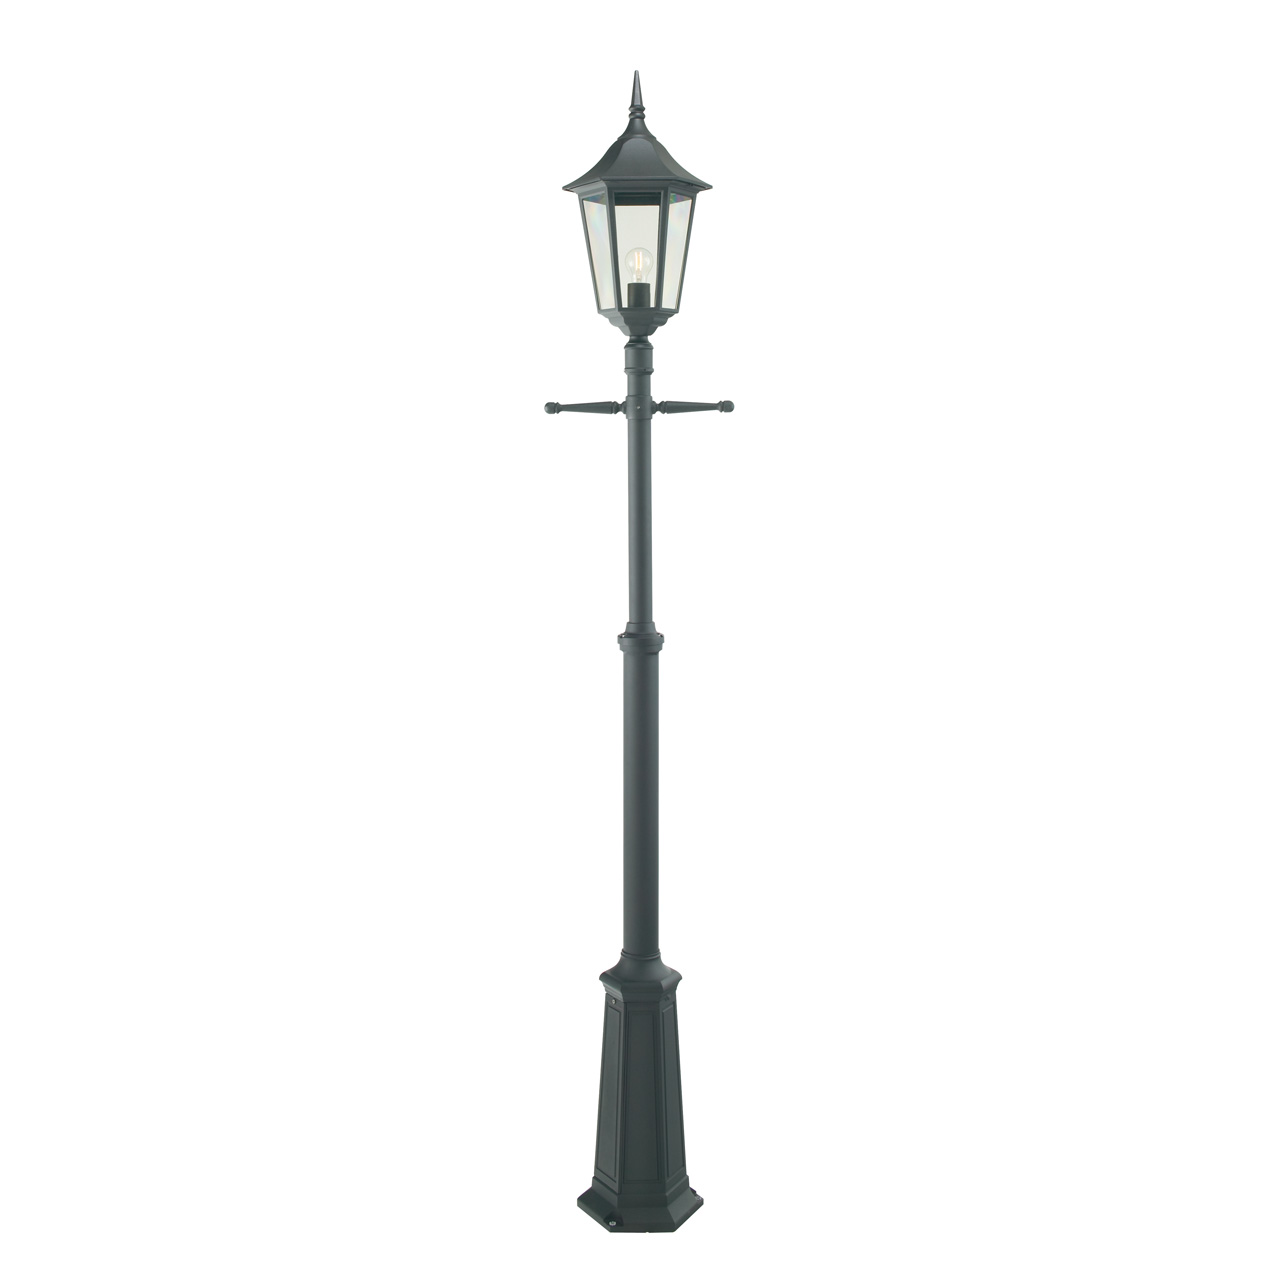 Norlys Modena 301 Sort Stolpe E27 IP44 H:193-283cm